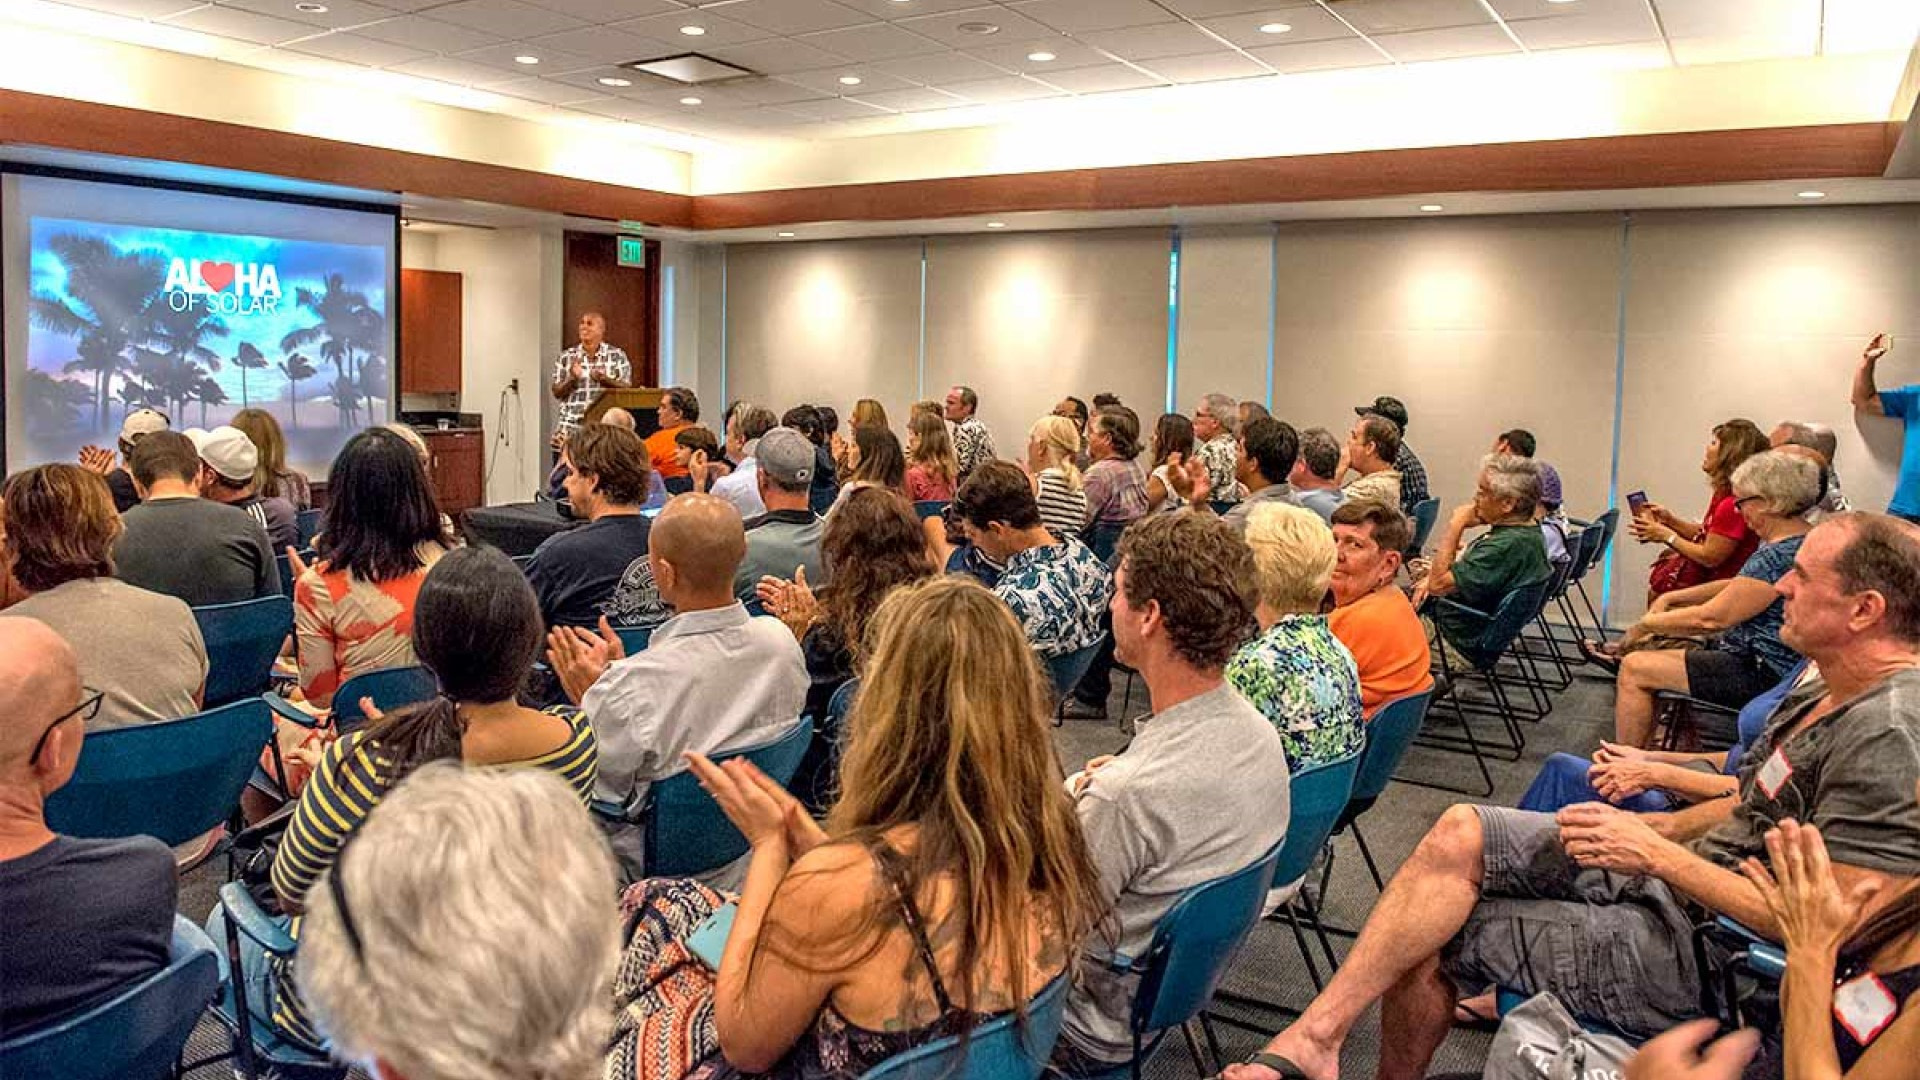 aloha of solar conference put on by rising sun solar. Features people siting in a conference style setting with a projection display